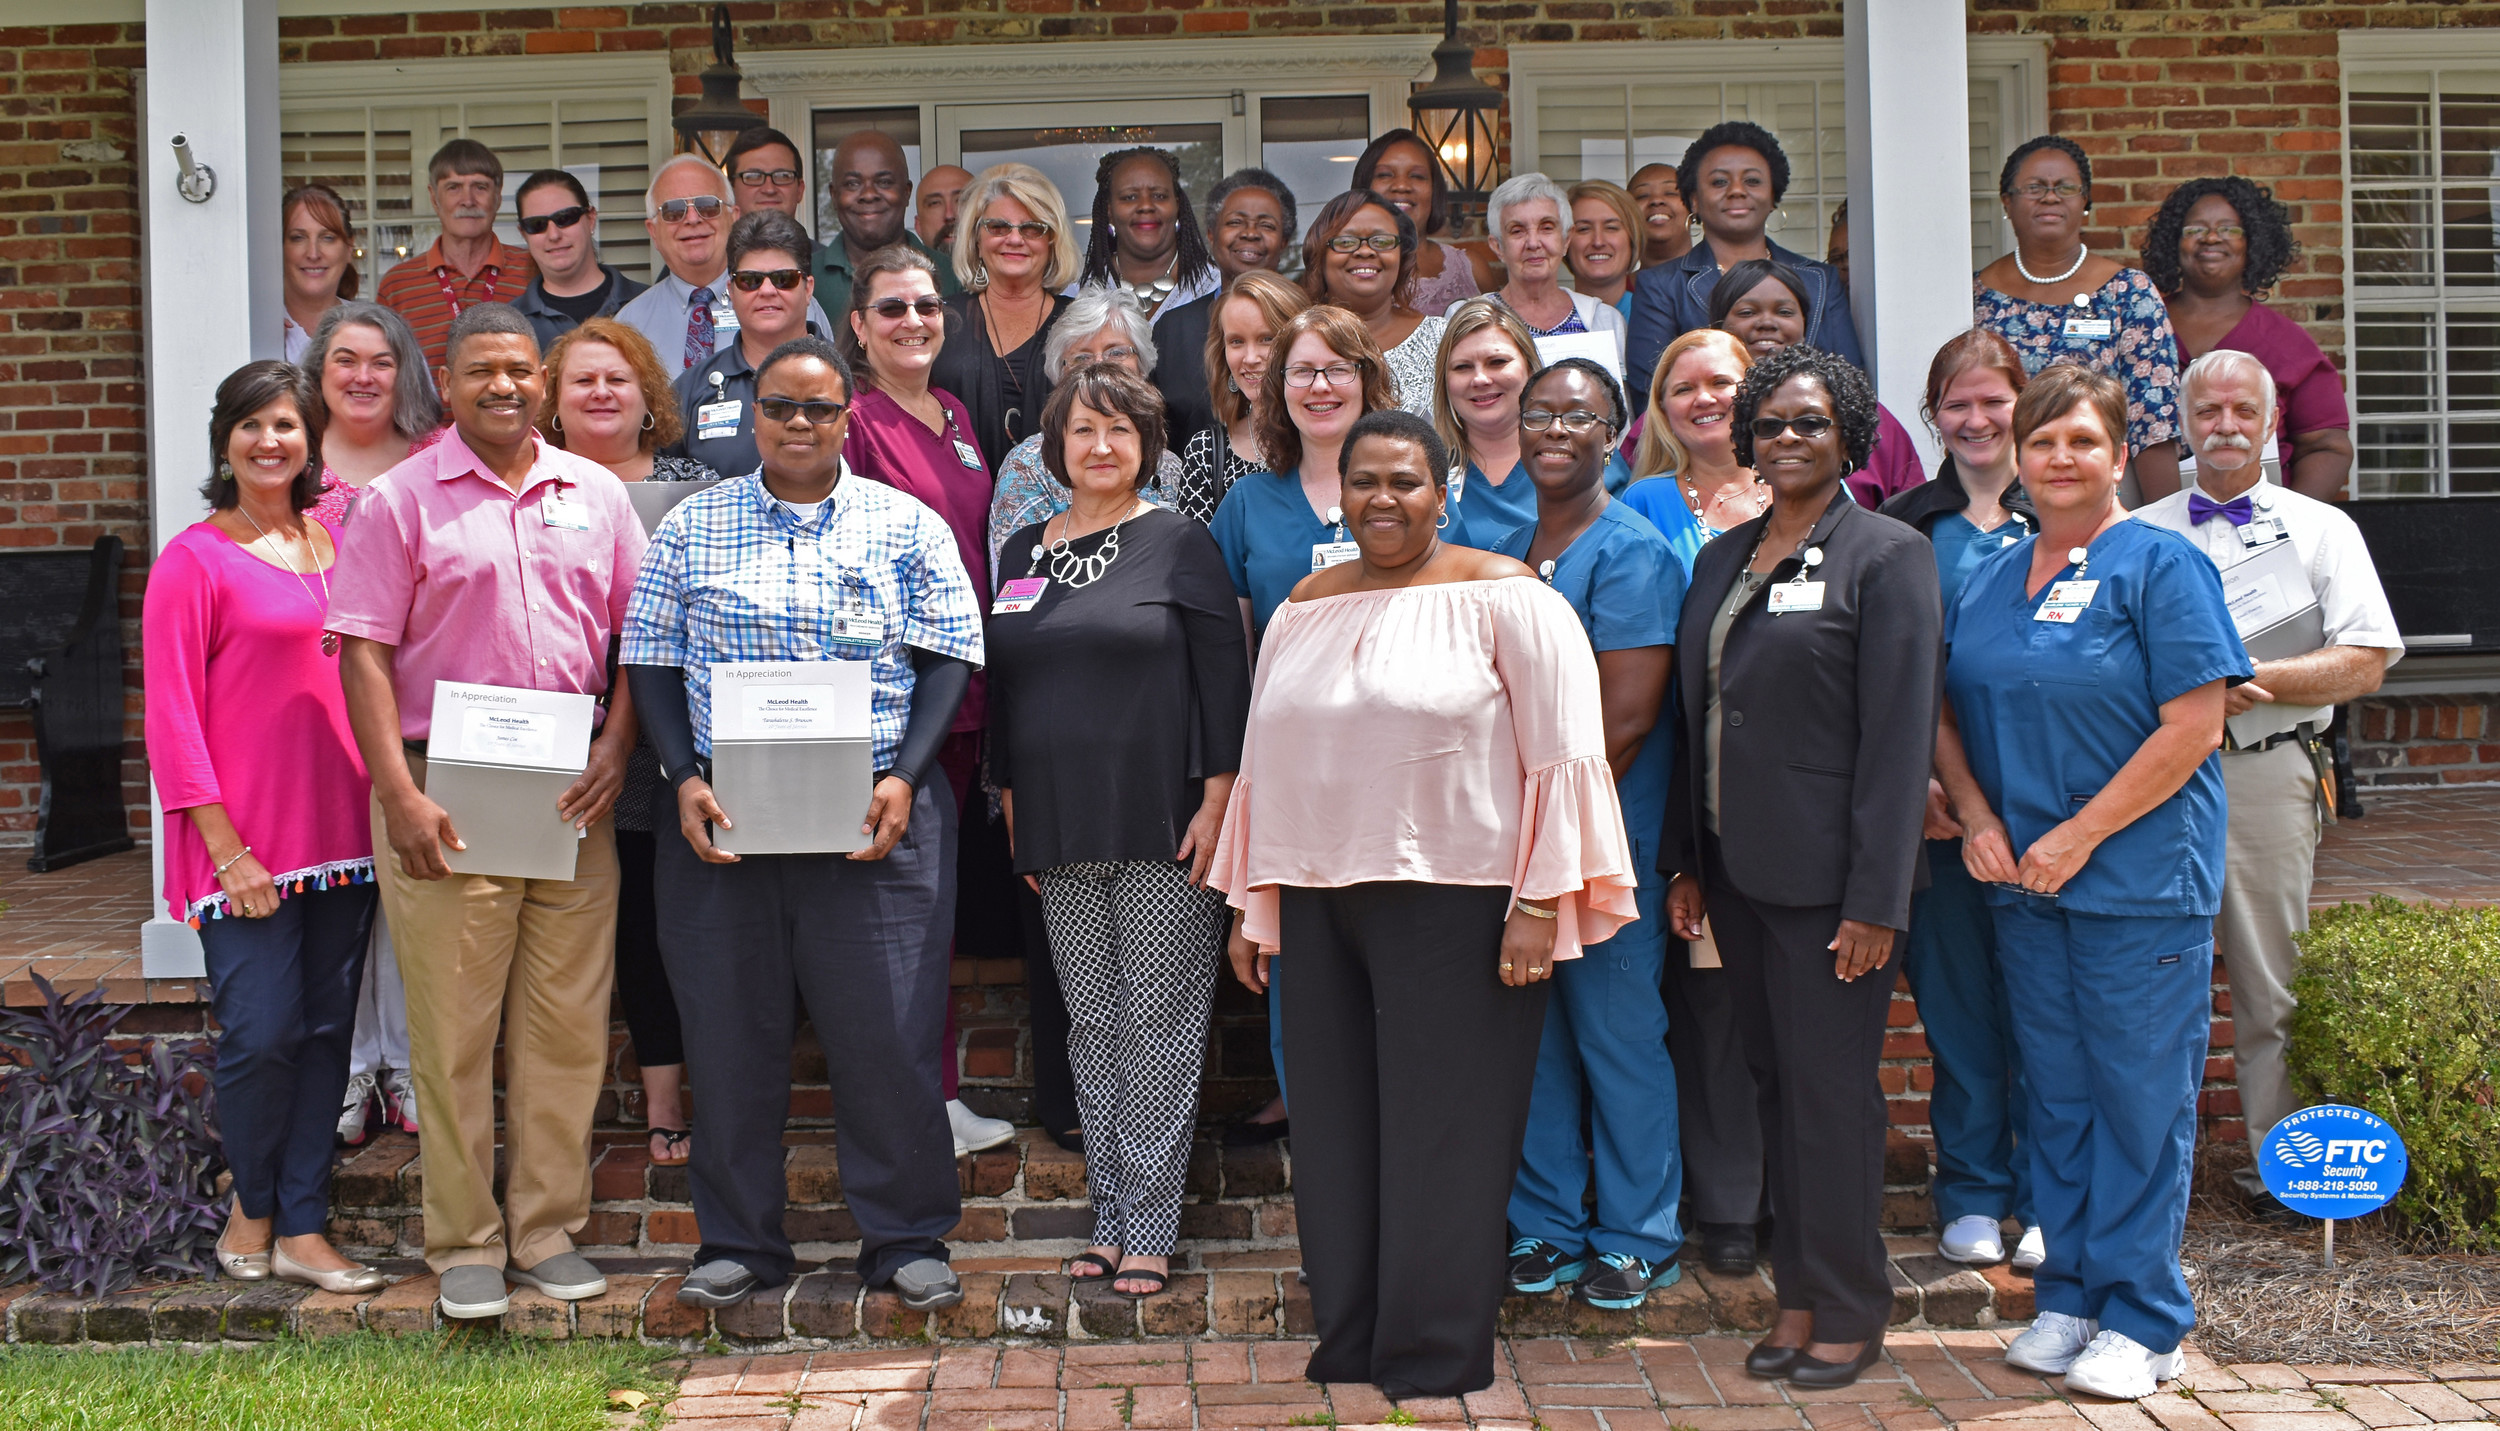 McLeod Health Clarendon honored more than 70 employees for their years of service at an awards luncheon on Sept. 6.